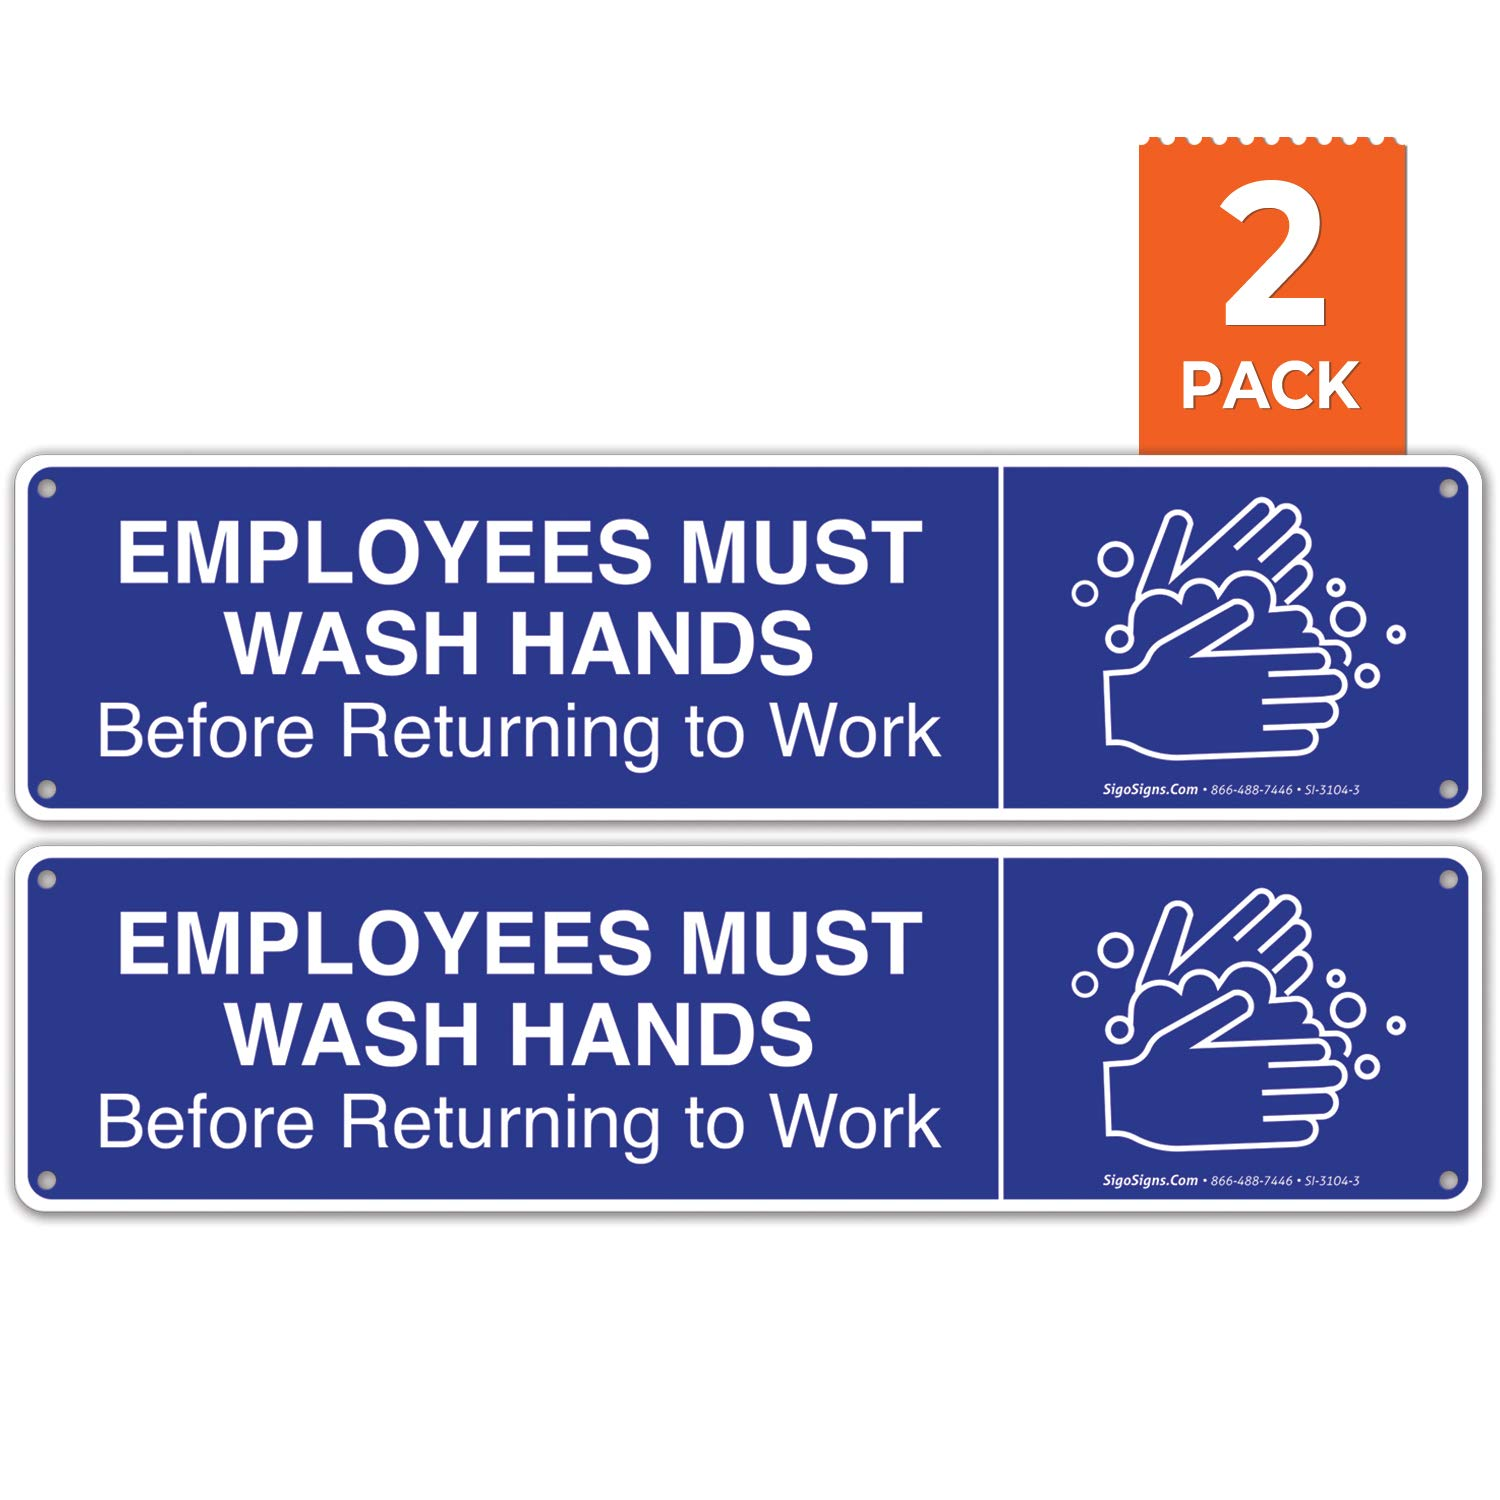 (2 Pack) Employees Must Wash Hands Before Returning to Work Sign, 3x12 Inches, Rust Free 0.40 Aluminum, Fade Resistant, Easy Mounting, Indoor/Outdoor Use, Made in USA by SIGO SIGNS